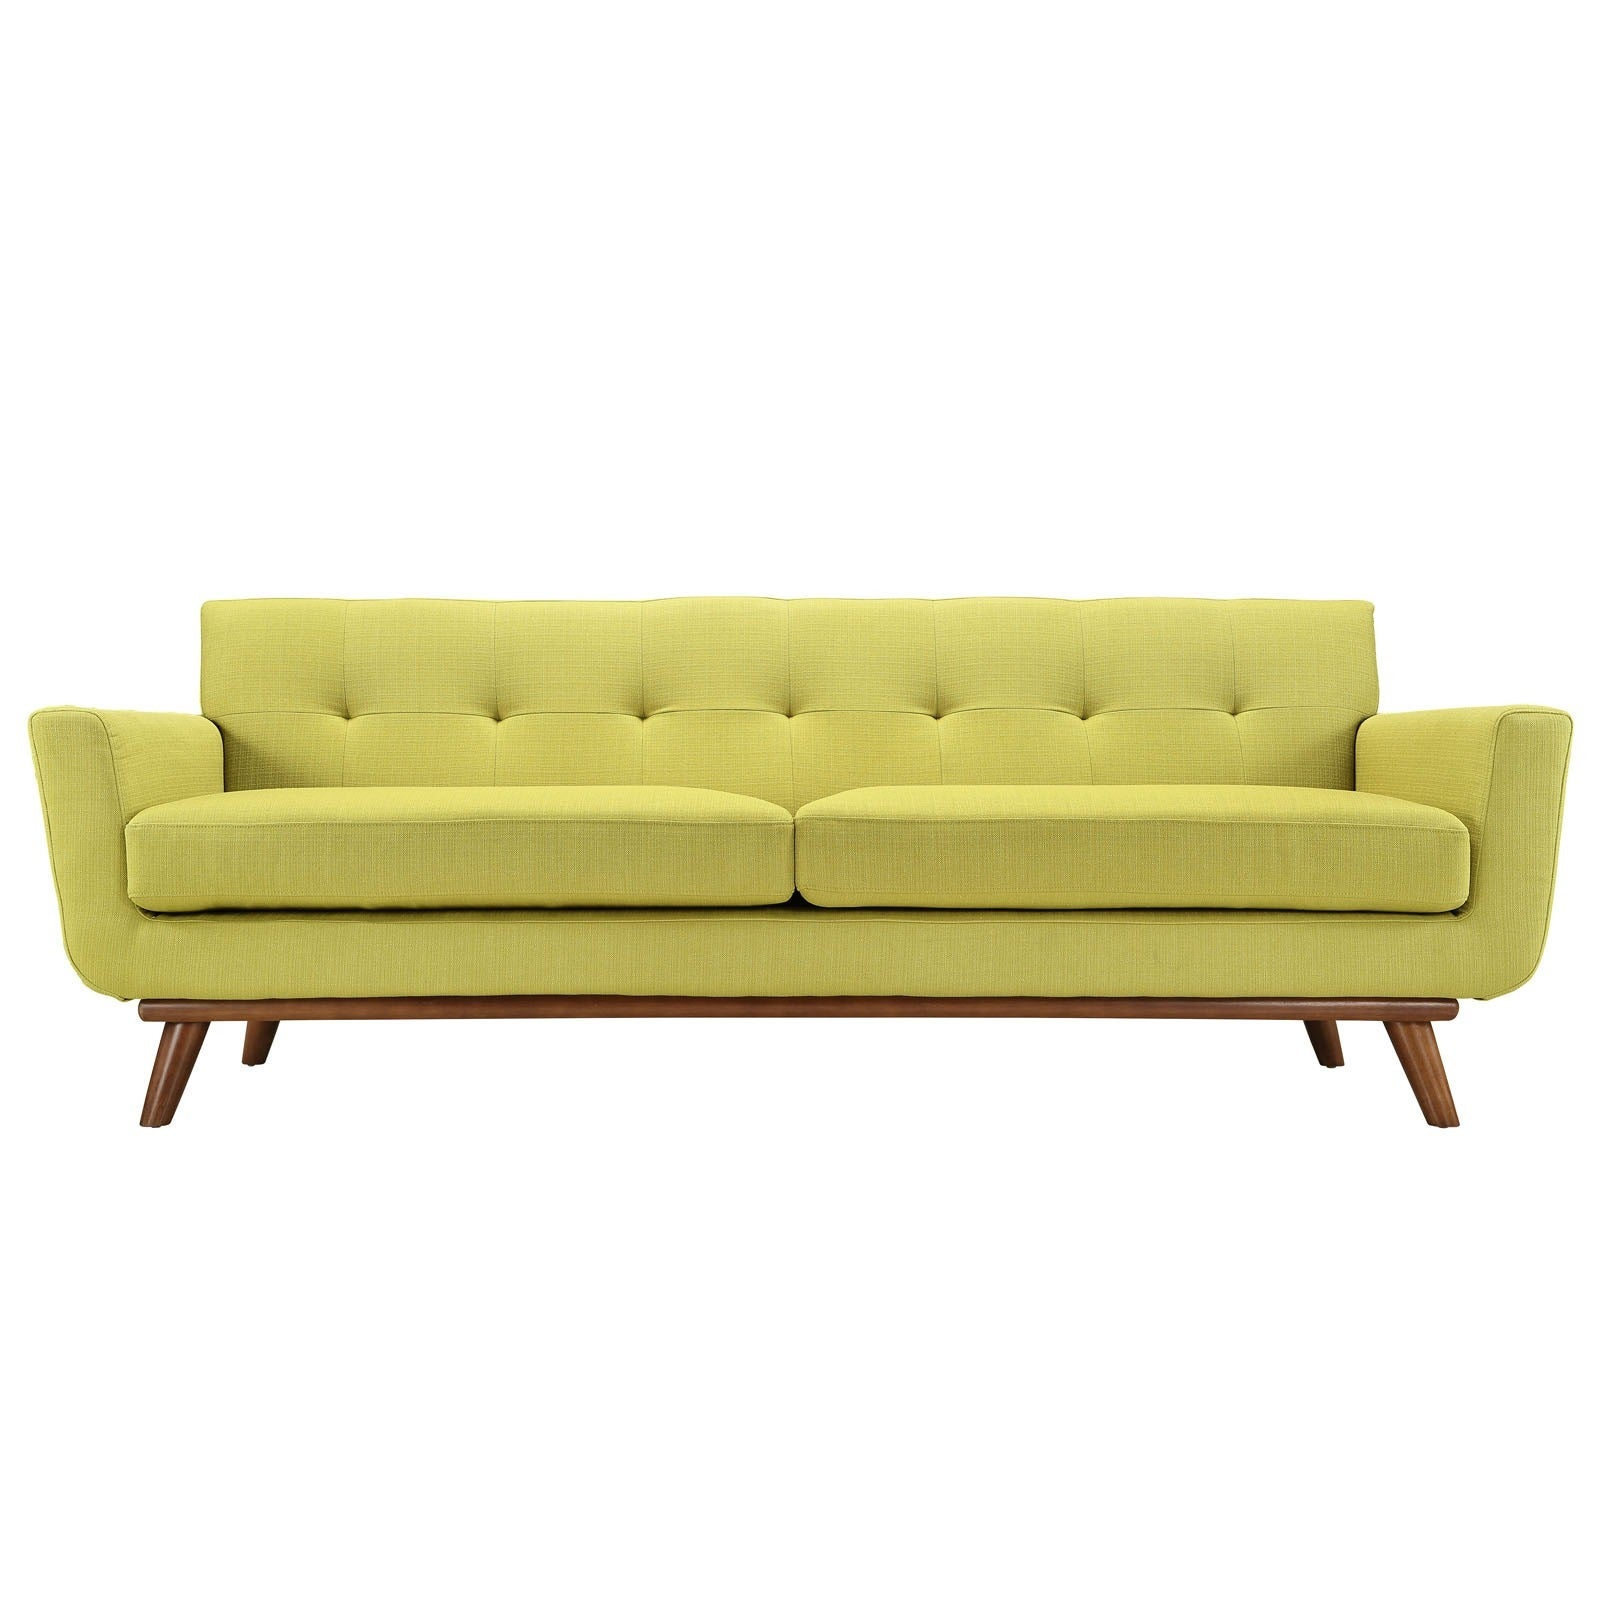 High Quality Modway Engage Mid Century Fabric Upholstered Sofa   Free Shipping Today    Overstock   16027573